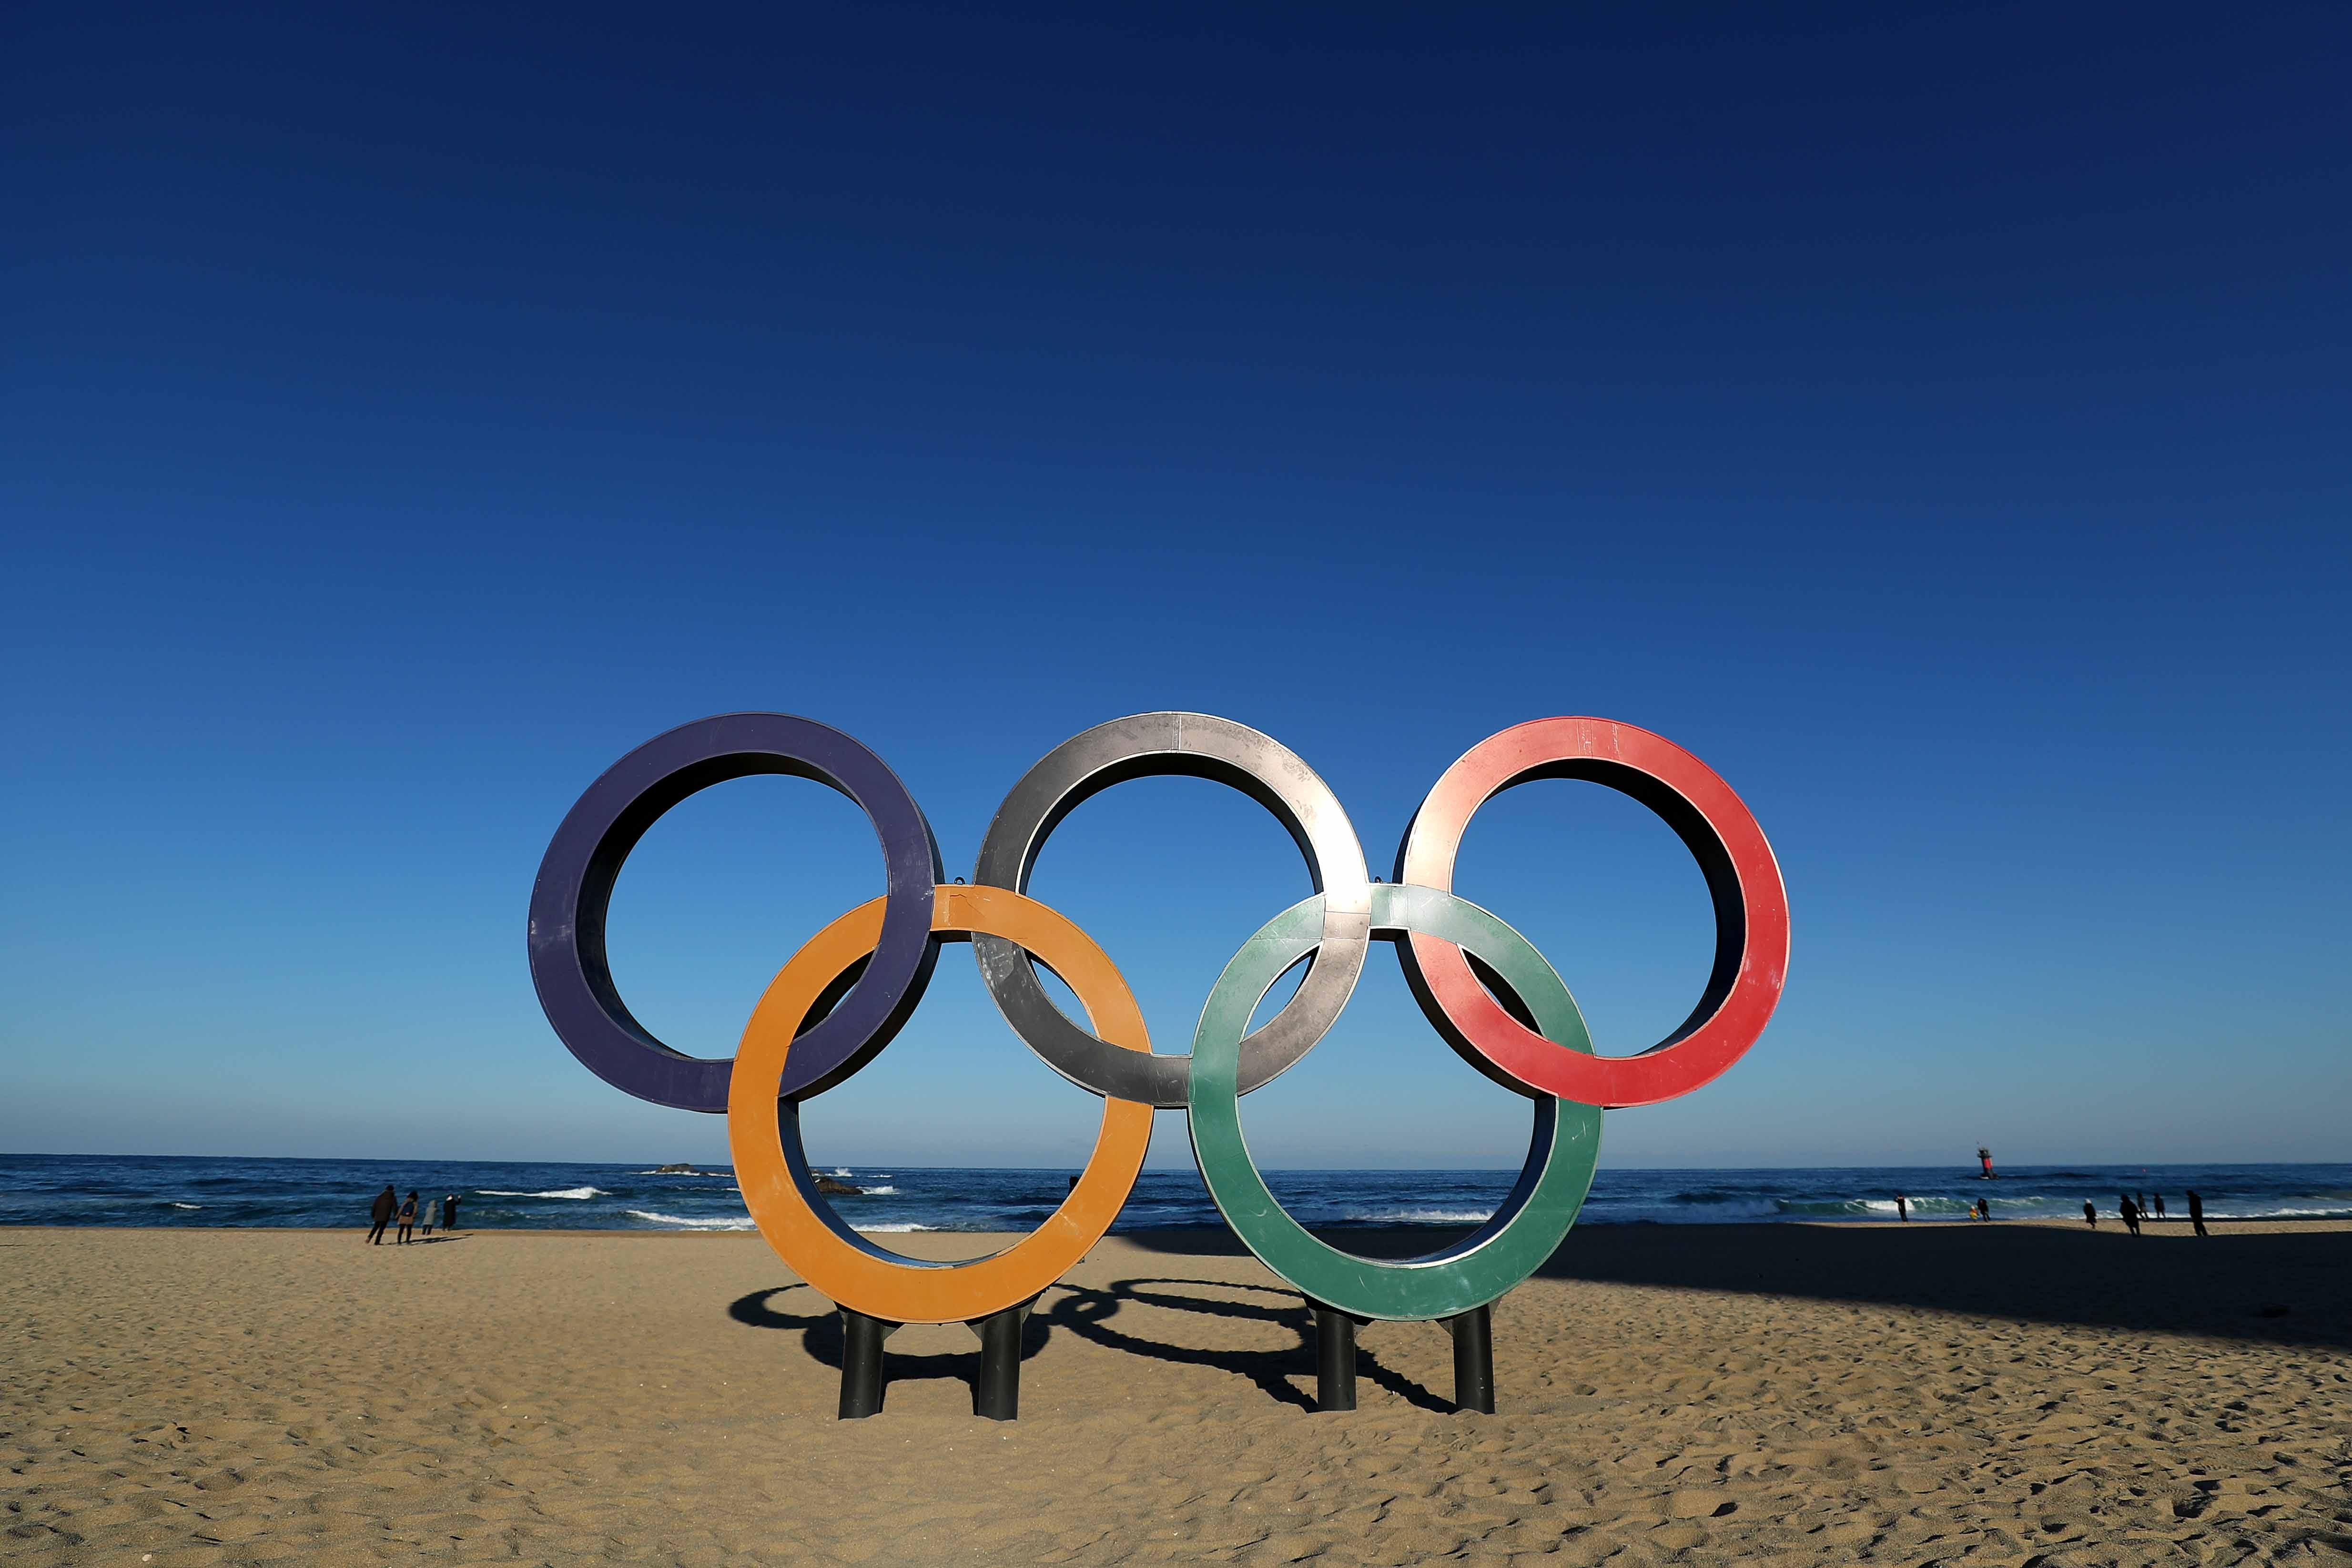 the olympics promise to bring countries together What the host country or host city does with the venues after the olympics is up to the city and country to decide how do the olympic games bring countries together.